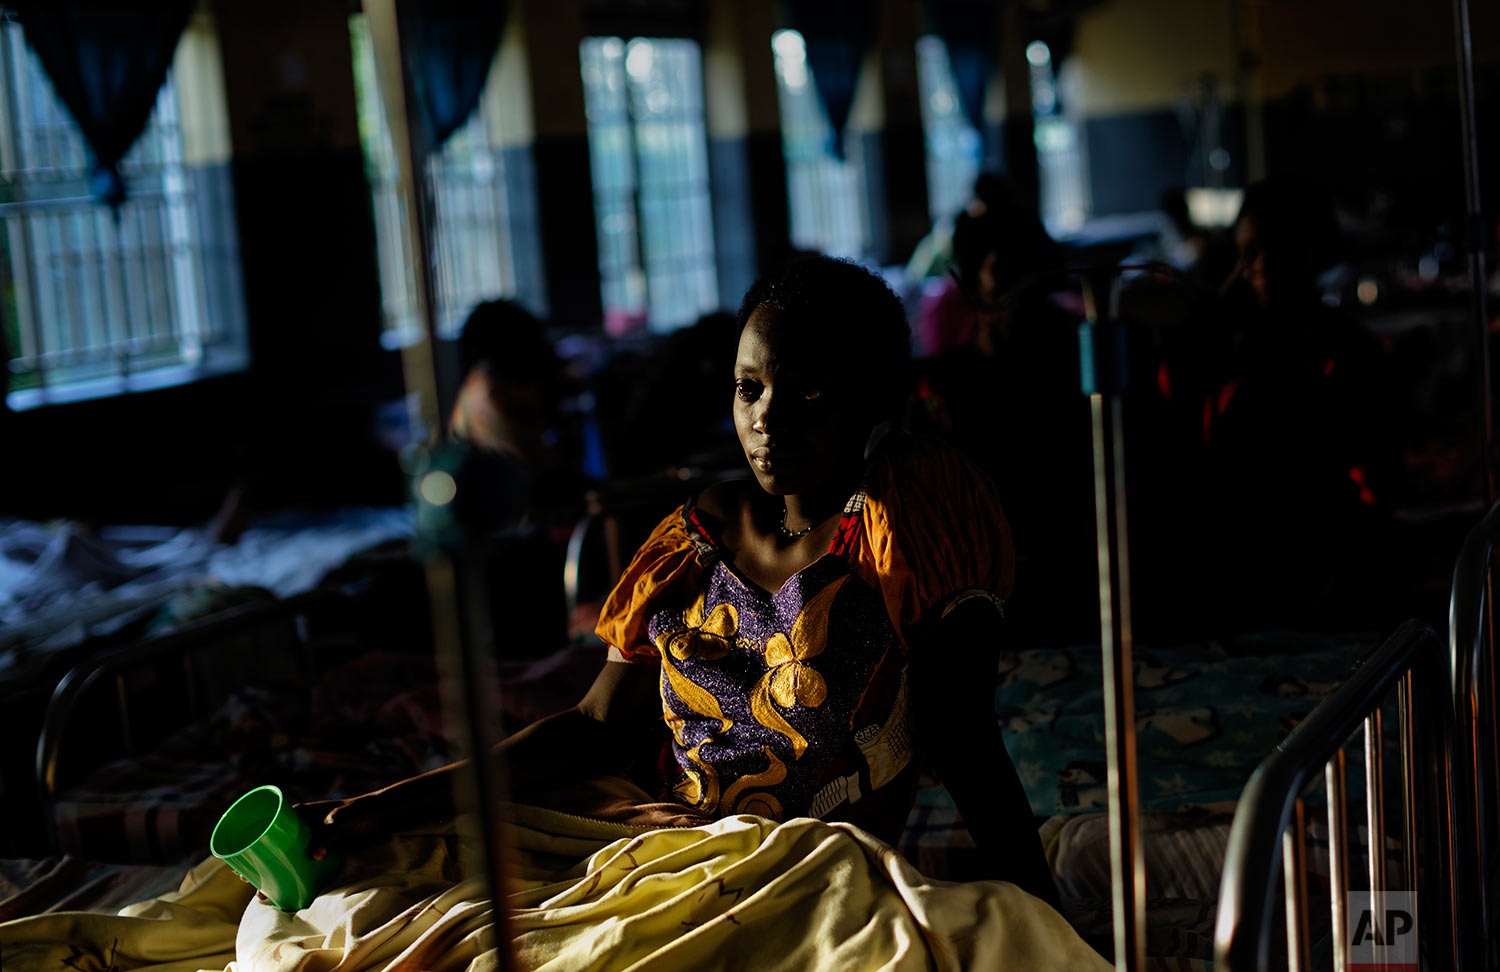 In this Wednesday, May 31, 2017 photo, expectant mothers lie on beds in the maternity ward of the Kalisizo General Hospital in Kalisizo, Uganda. (AP Photo/Ben Curtis)